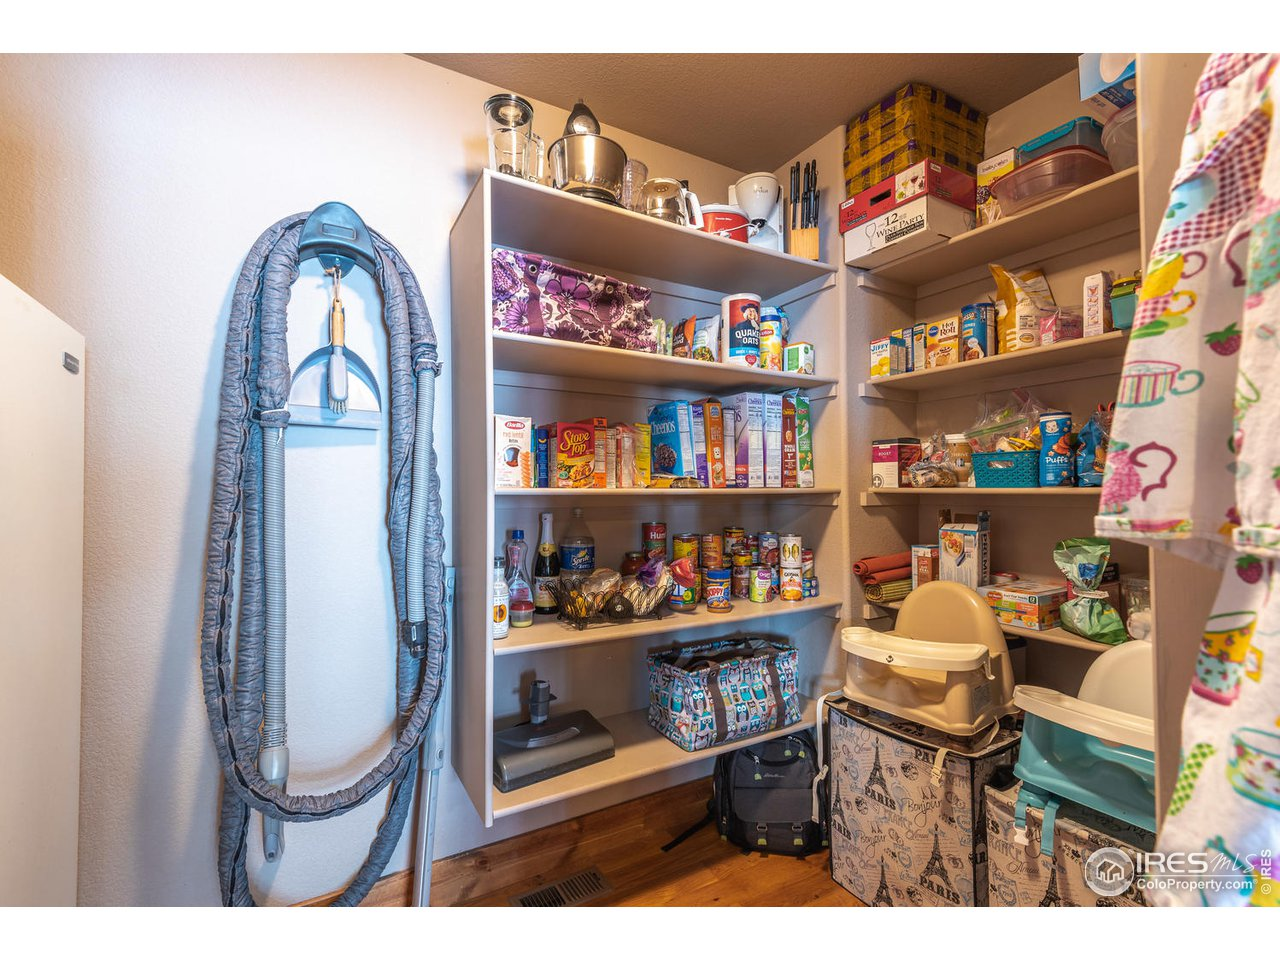 Enviable Walk-in pantry with room for freezer!